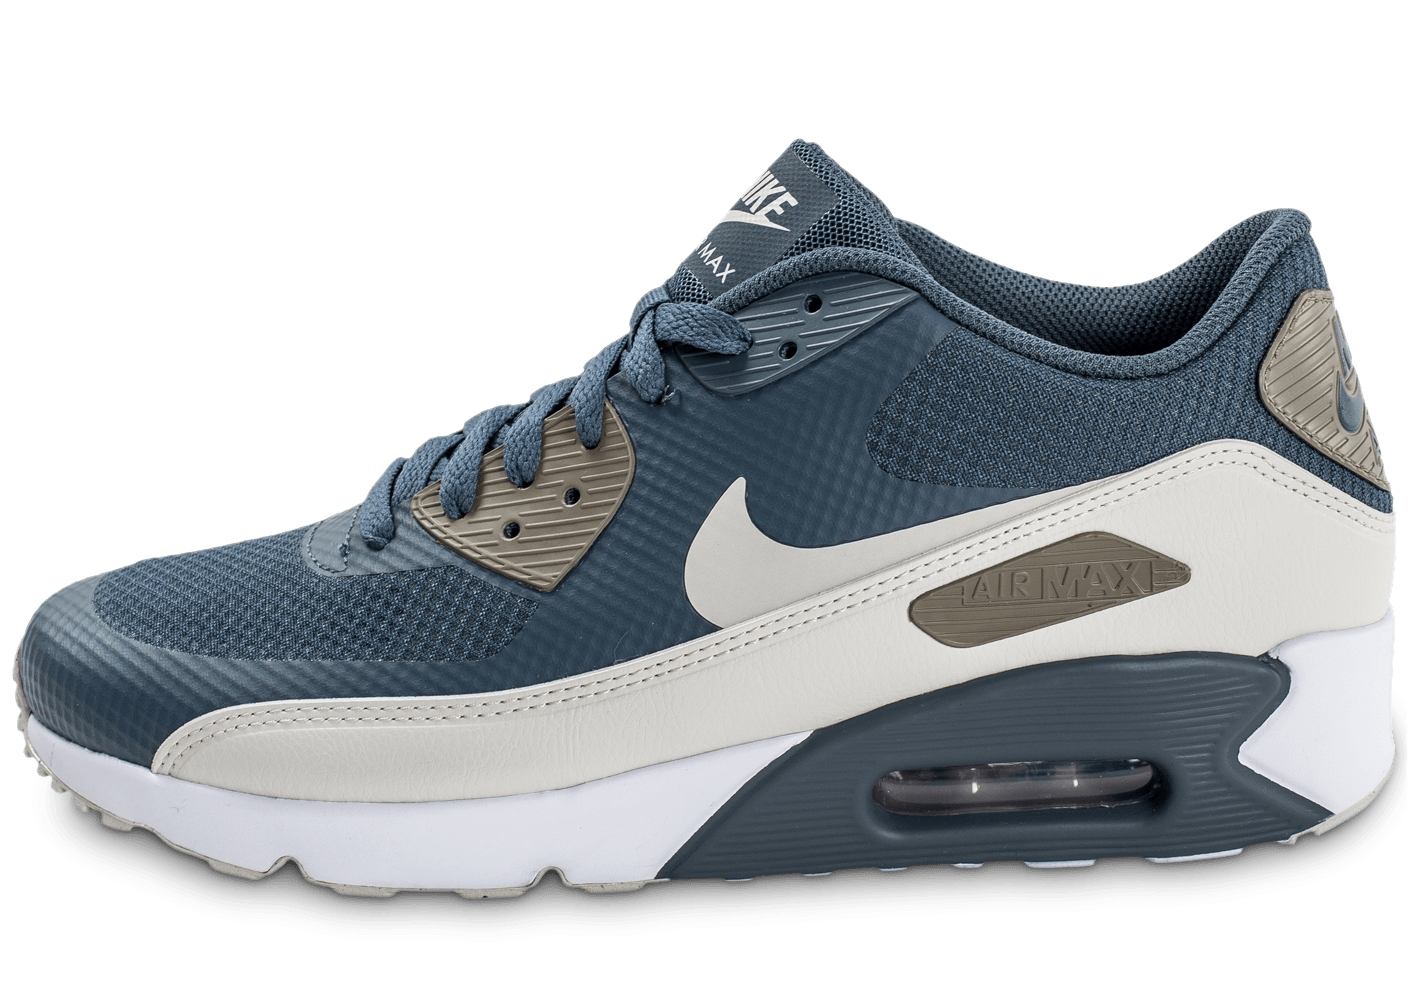 online store 32d32 5de8a Nike Air Max 90 Ultra Essential Blue Fox - Chaussures Baskets homme -  Chausport